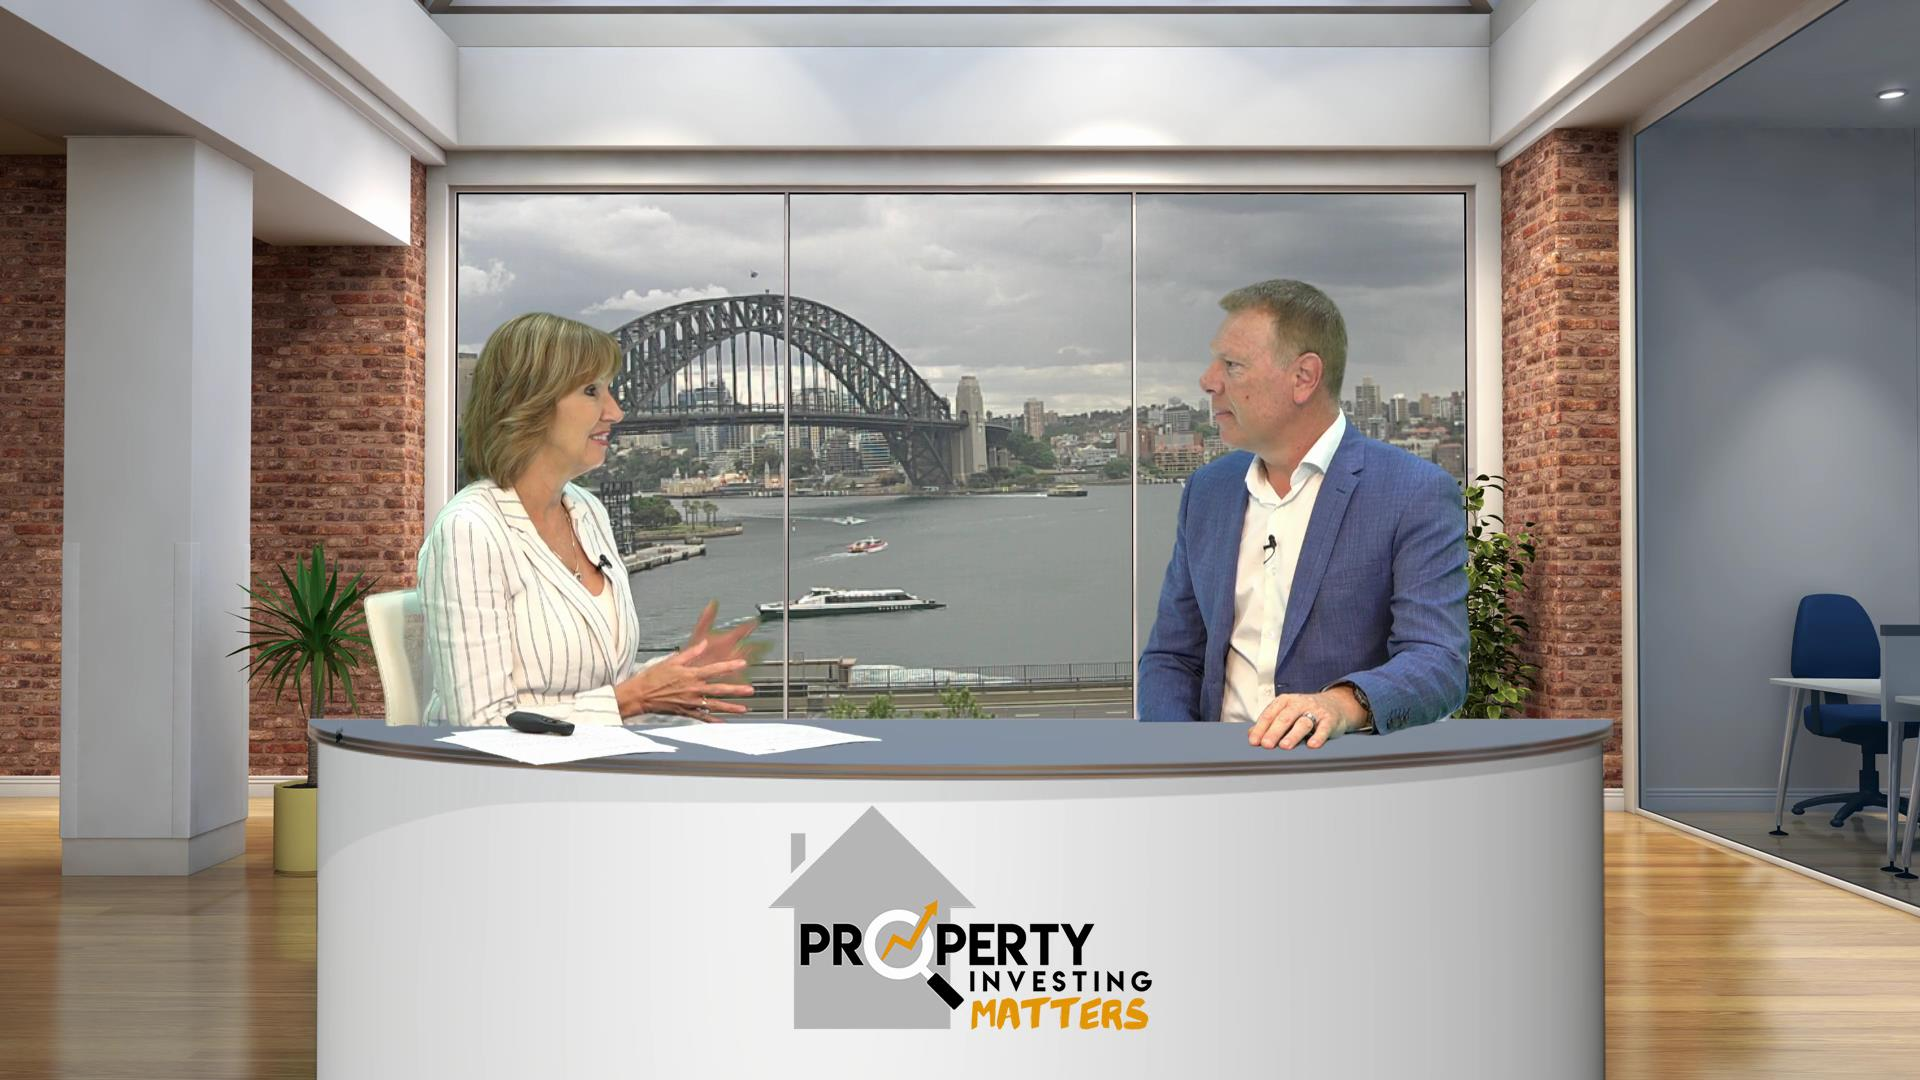 Property Investing Matters: 05-11-2019 - Margaret & Steve Waters